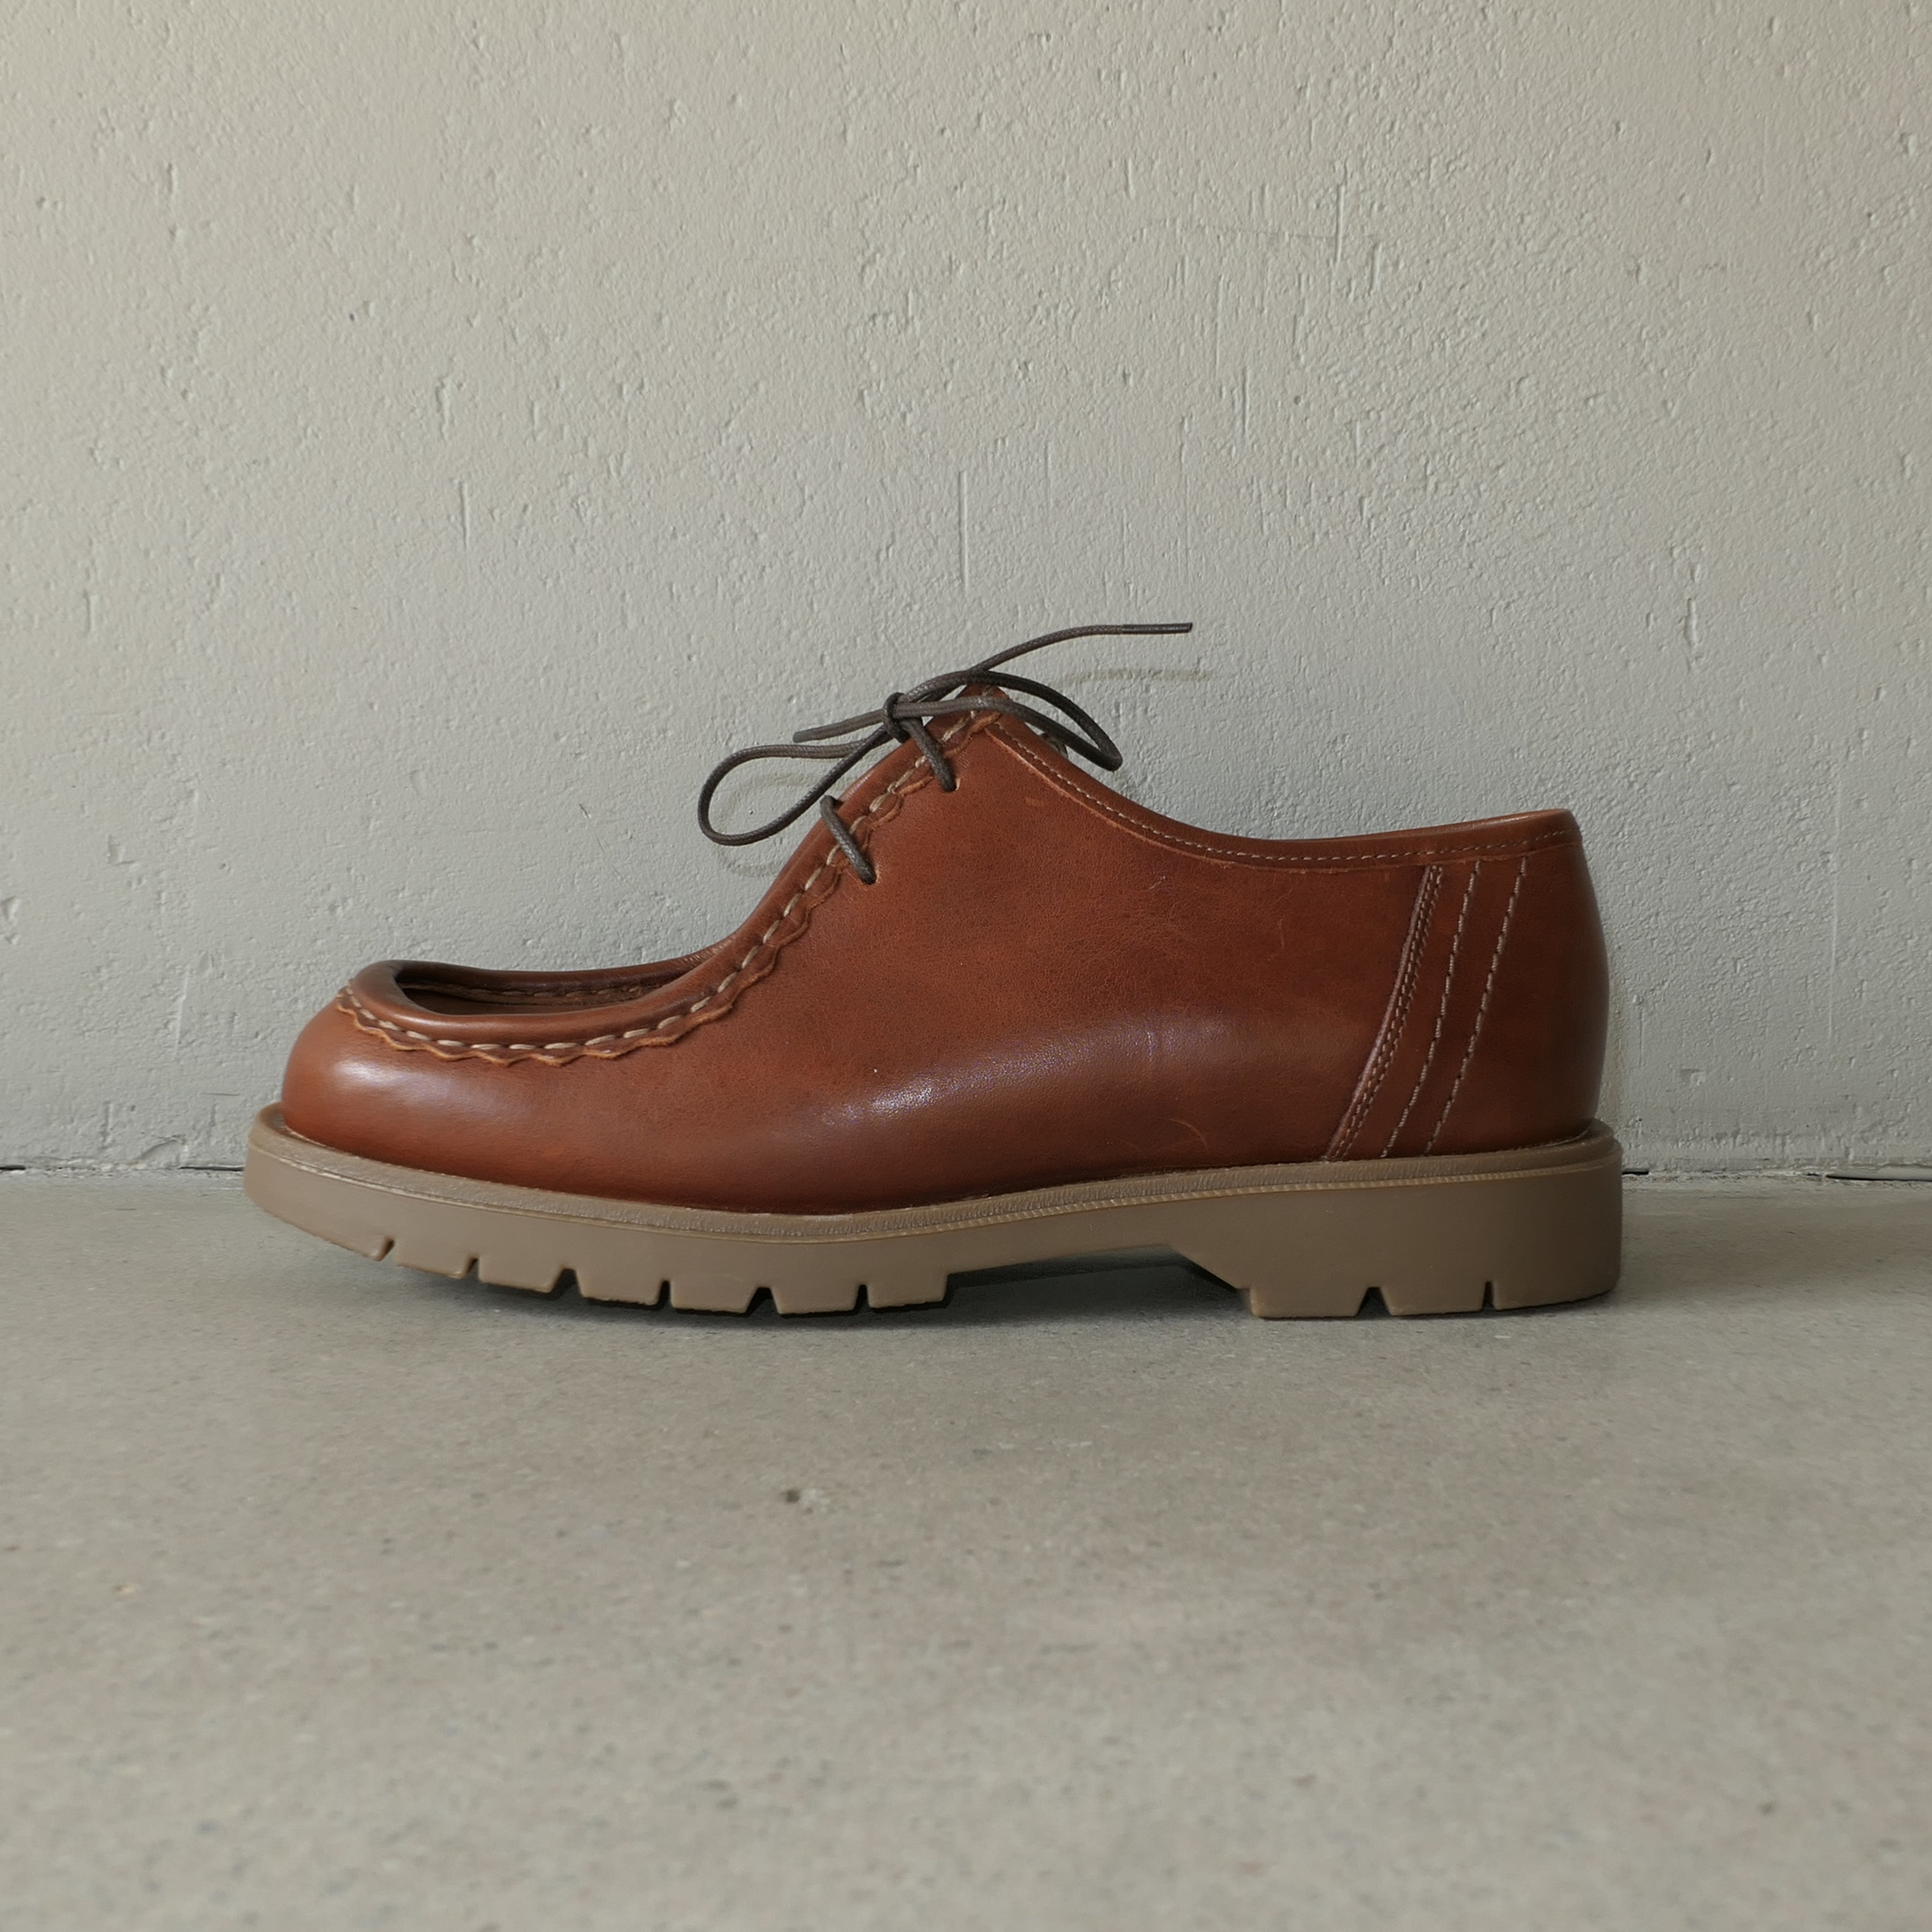 Kleman worker shoes – brick